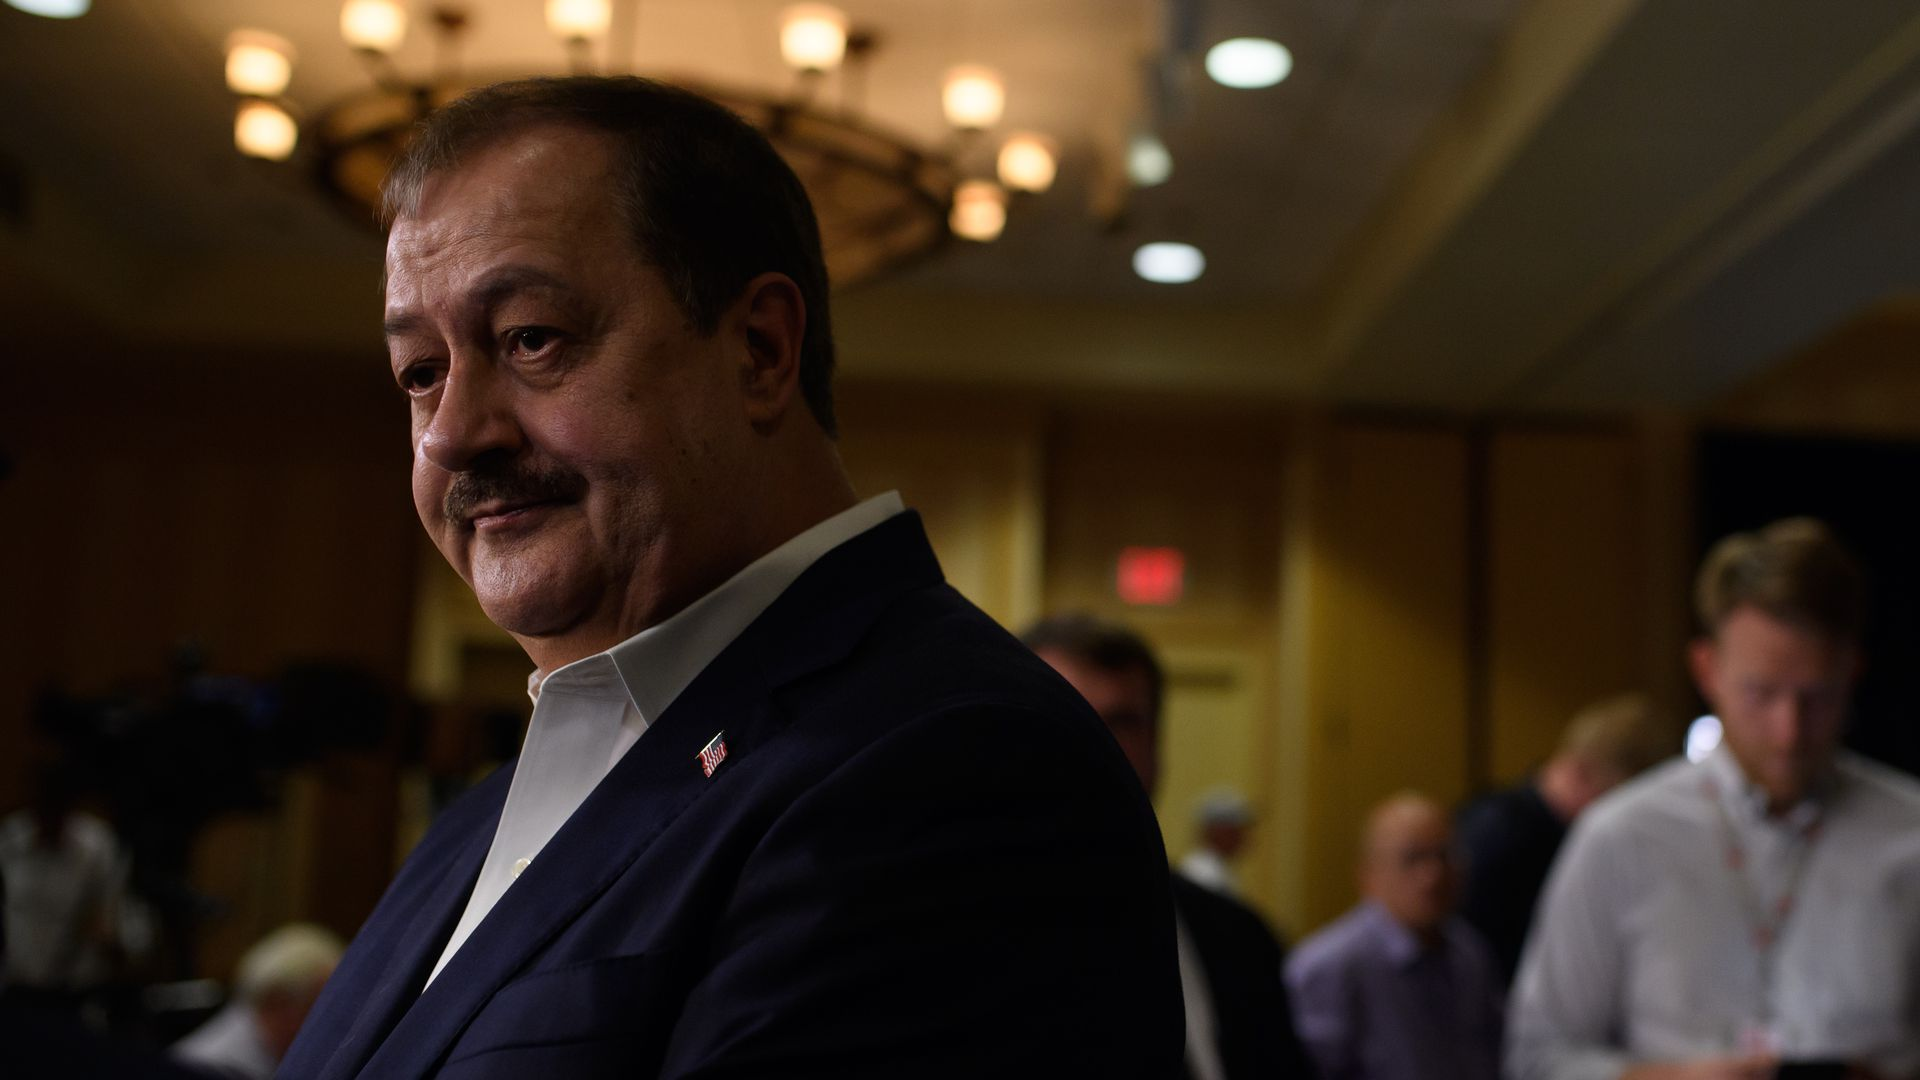 Don Blankenship Photo: Jeff Swensen/Getty Images